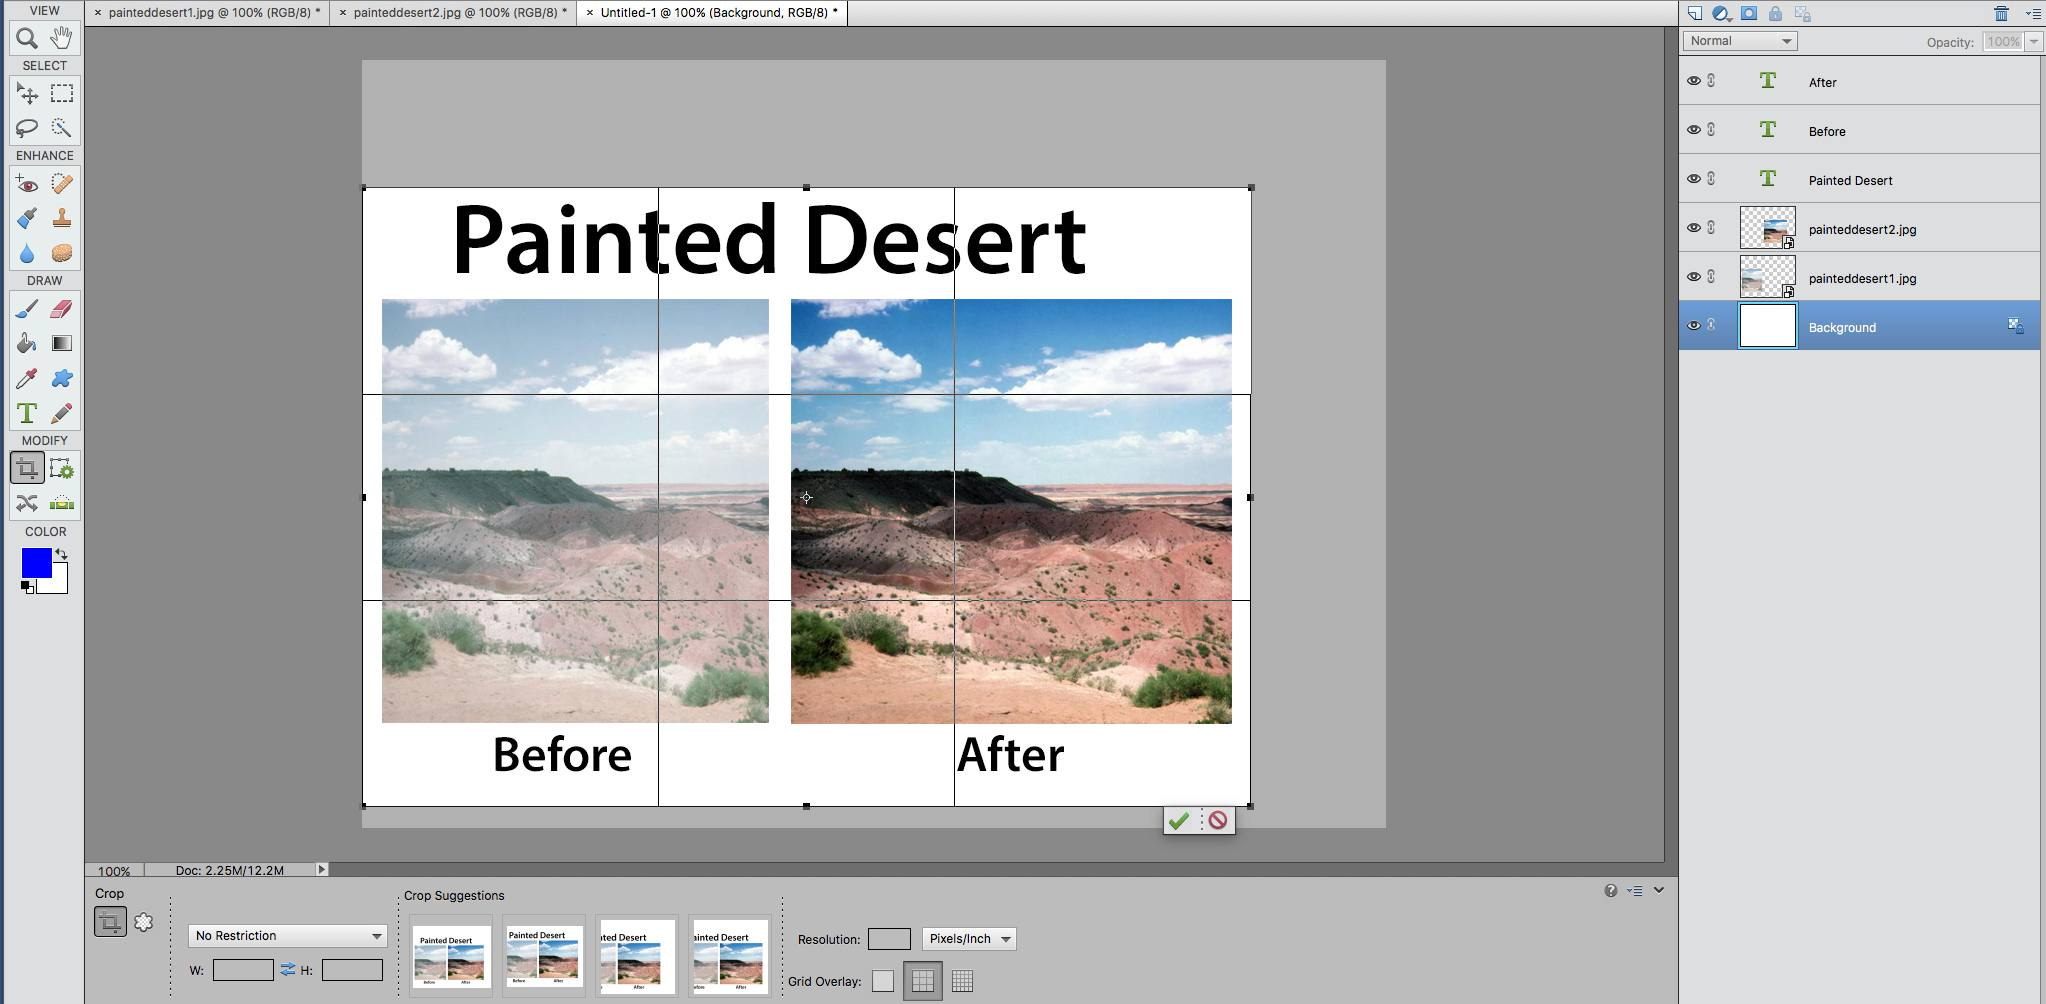 screenshot of a before and after image in photoshop elements